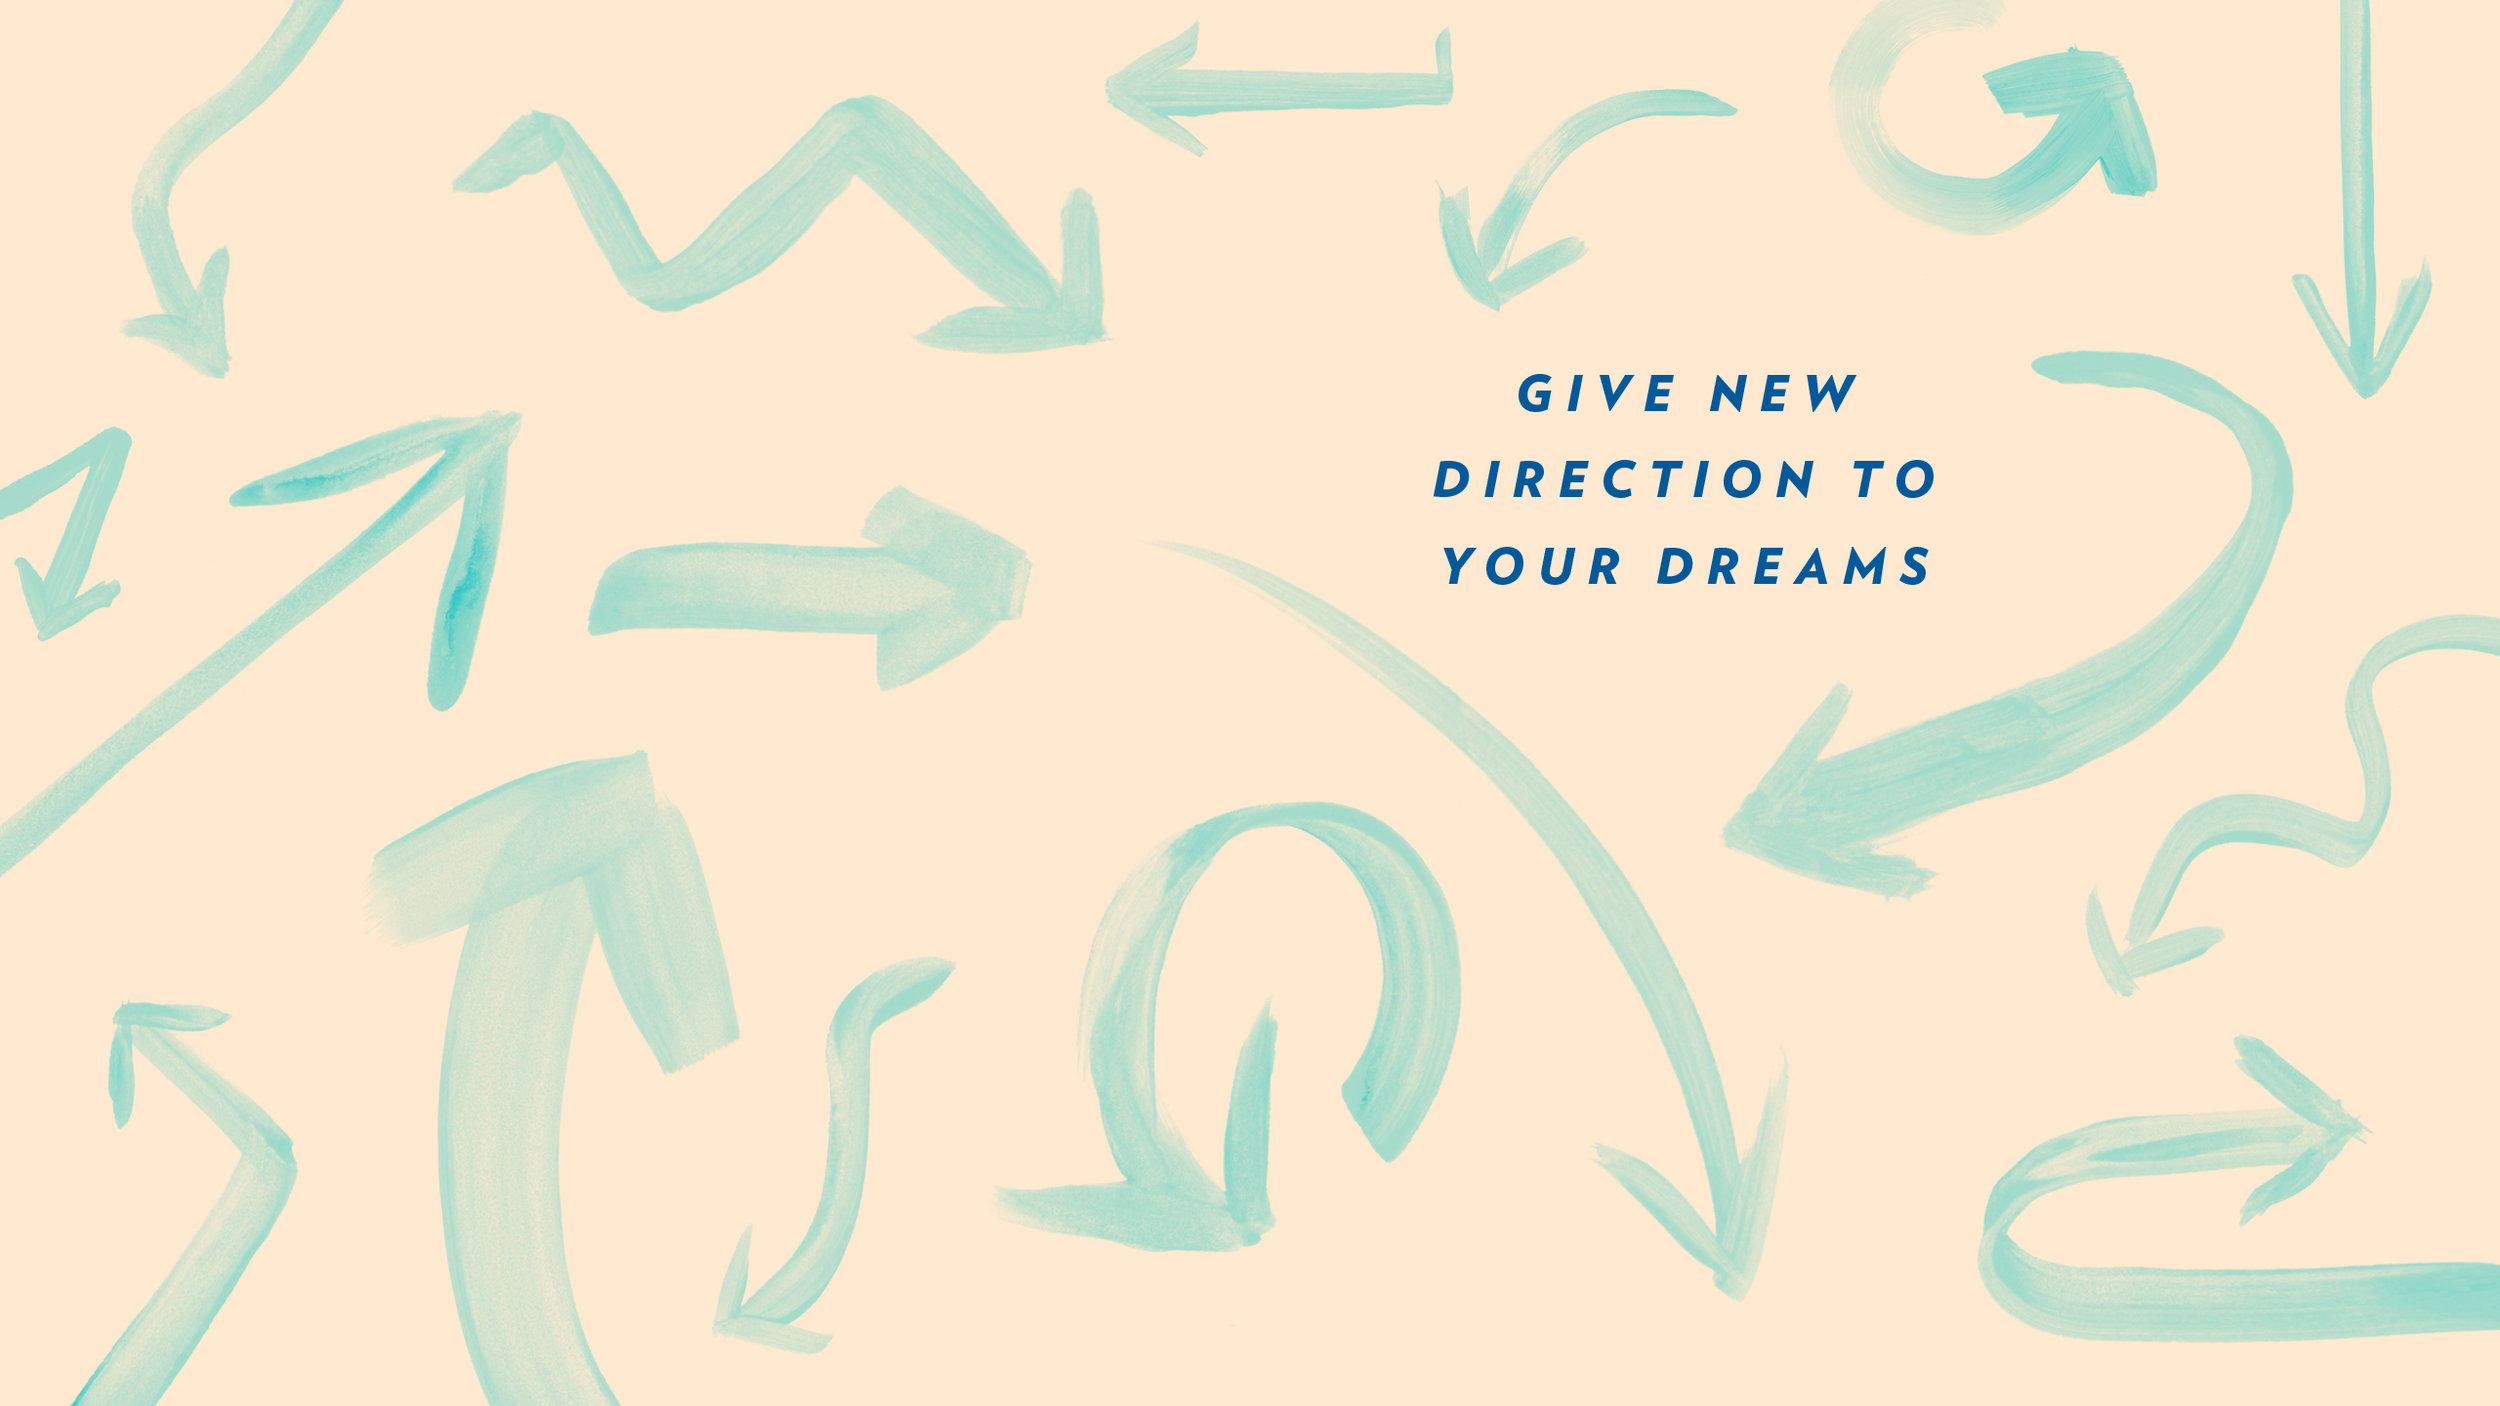 Give New Direction To Your Dreams Wallpaper Mara Dawn